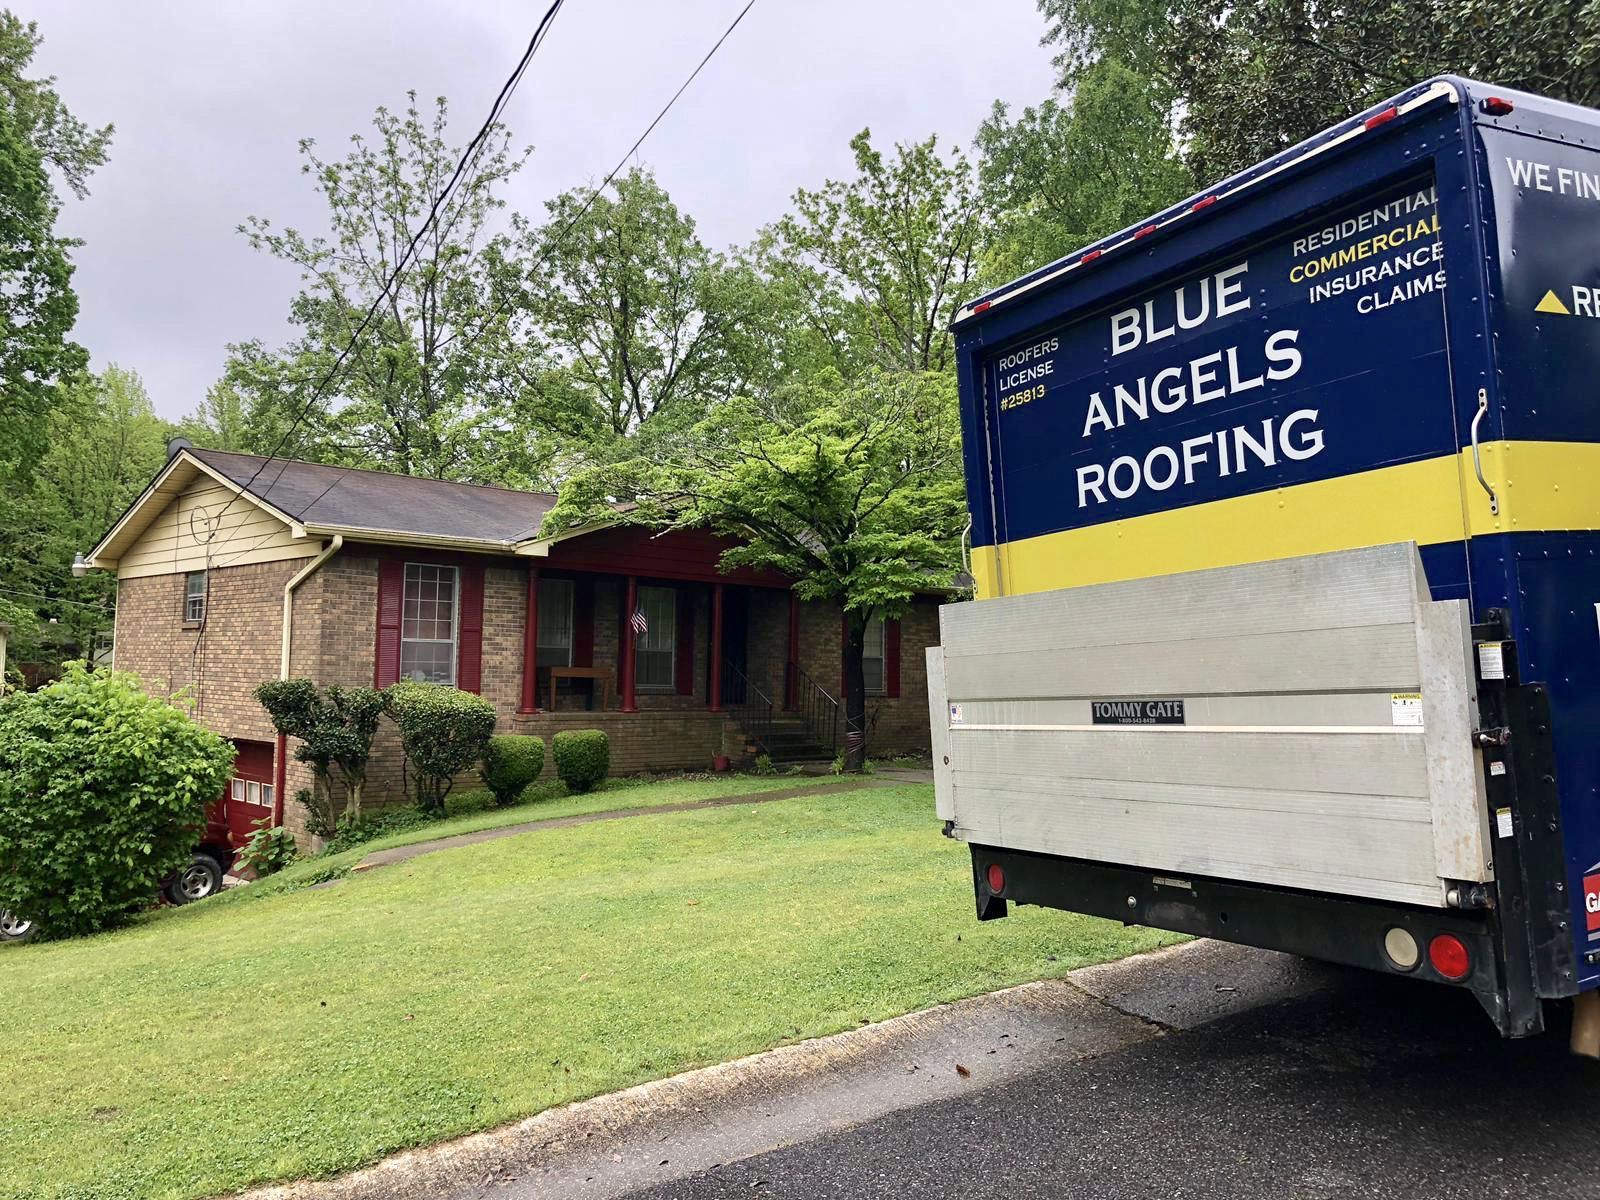 The Blue Angels Roofing Team Inspected This House To Determine